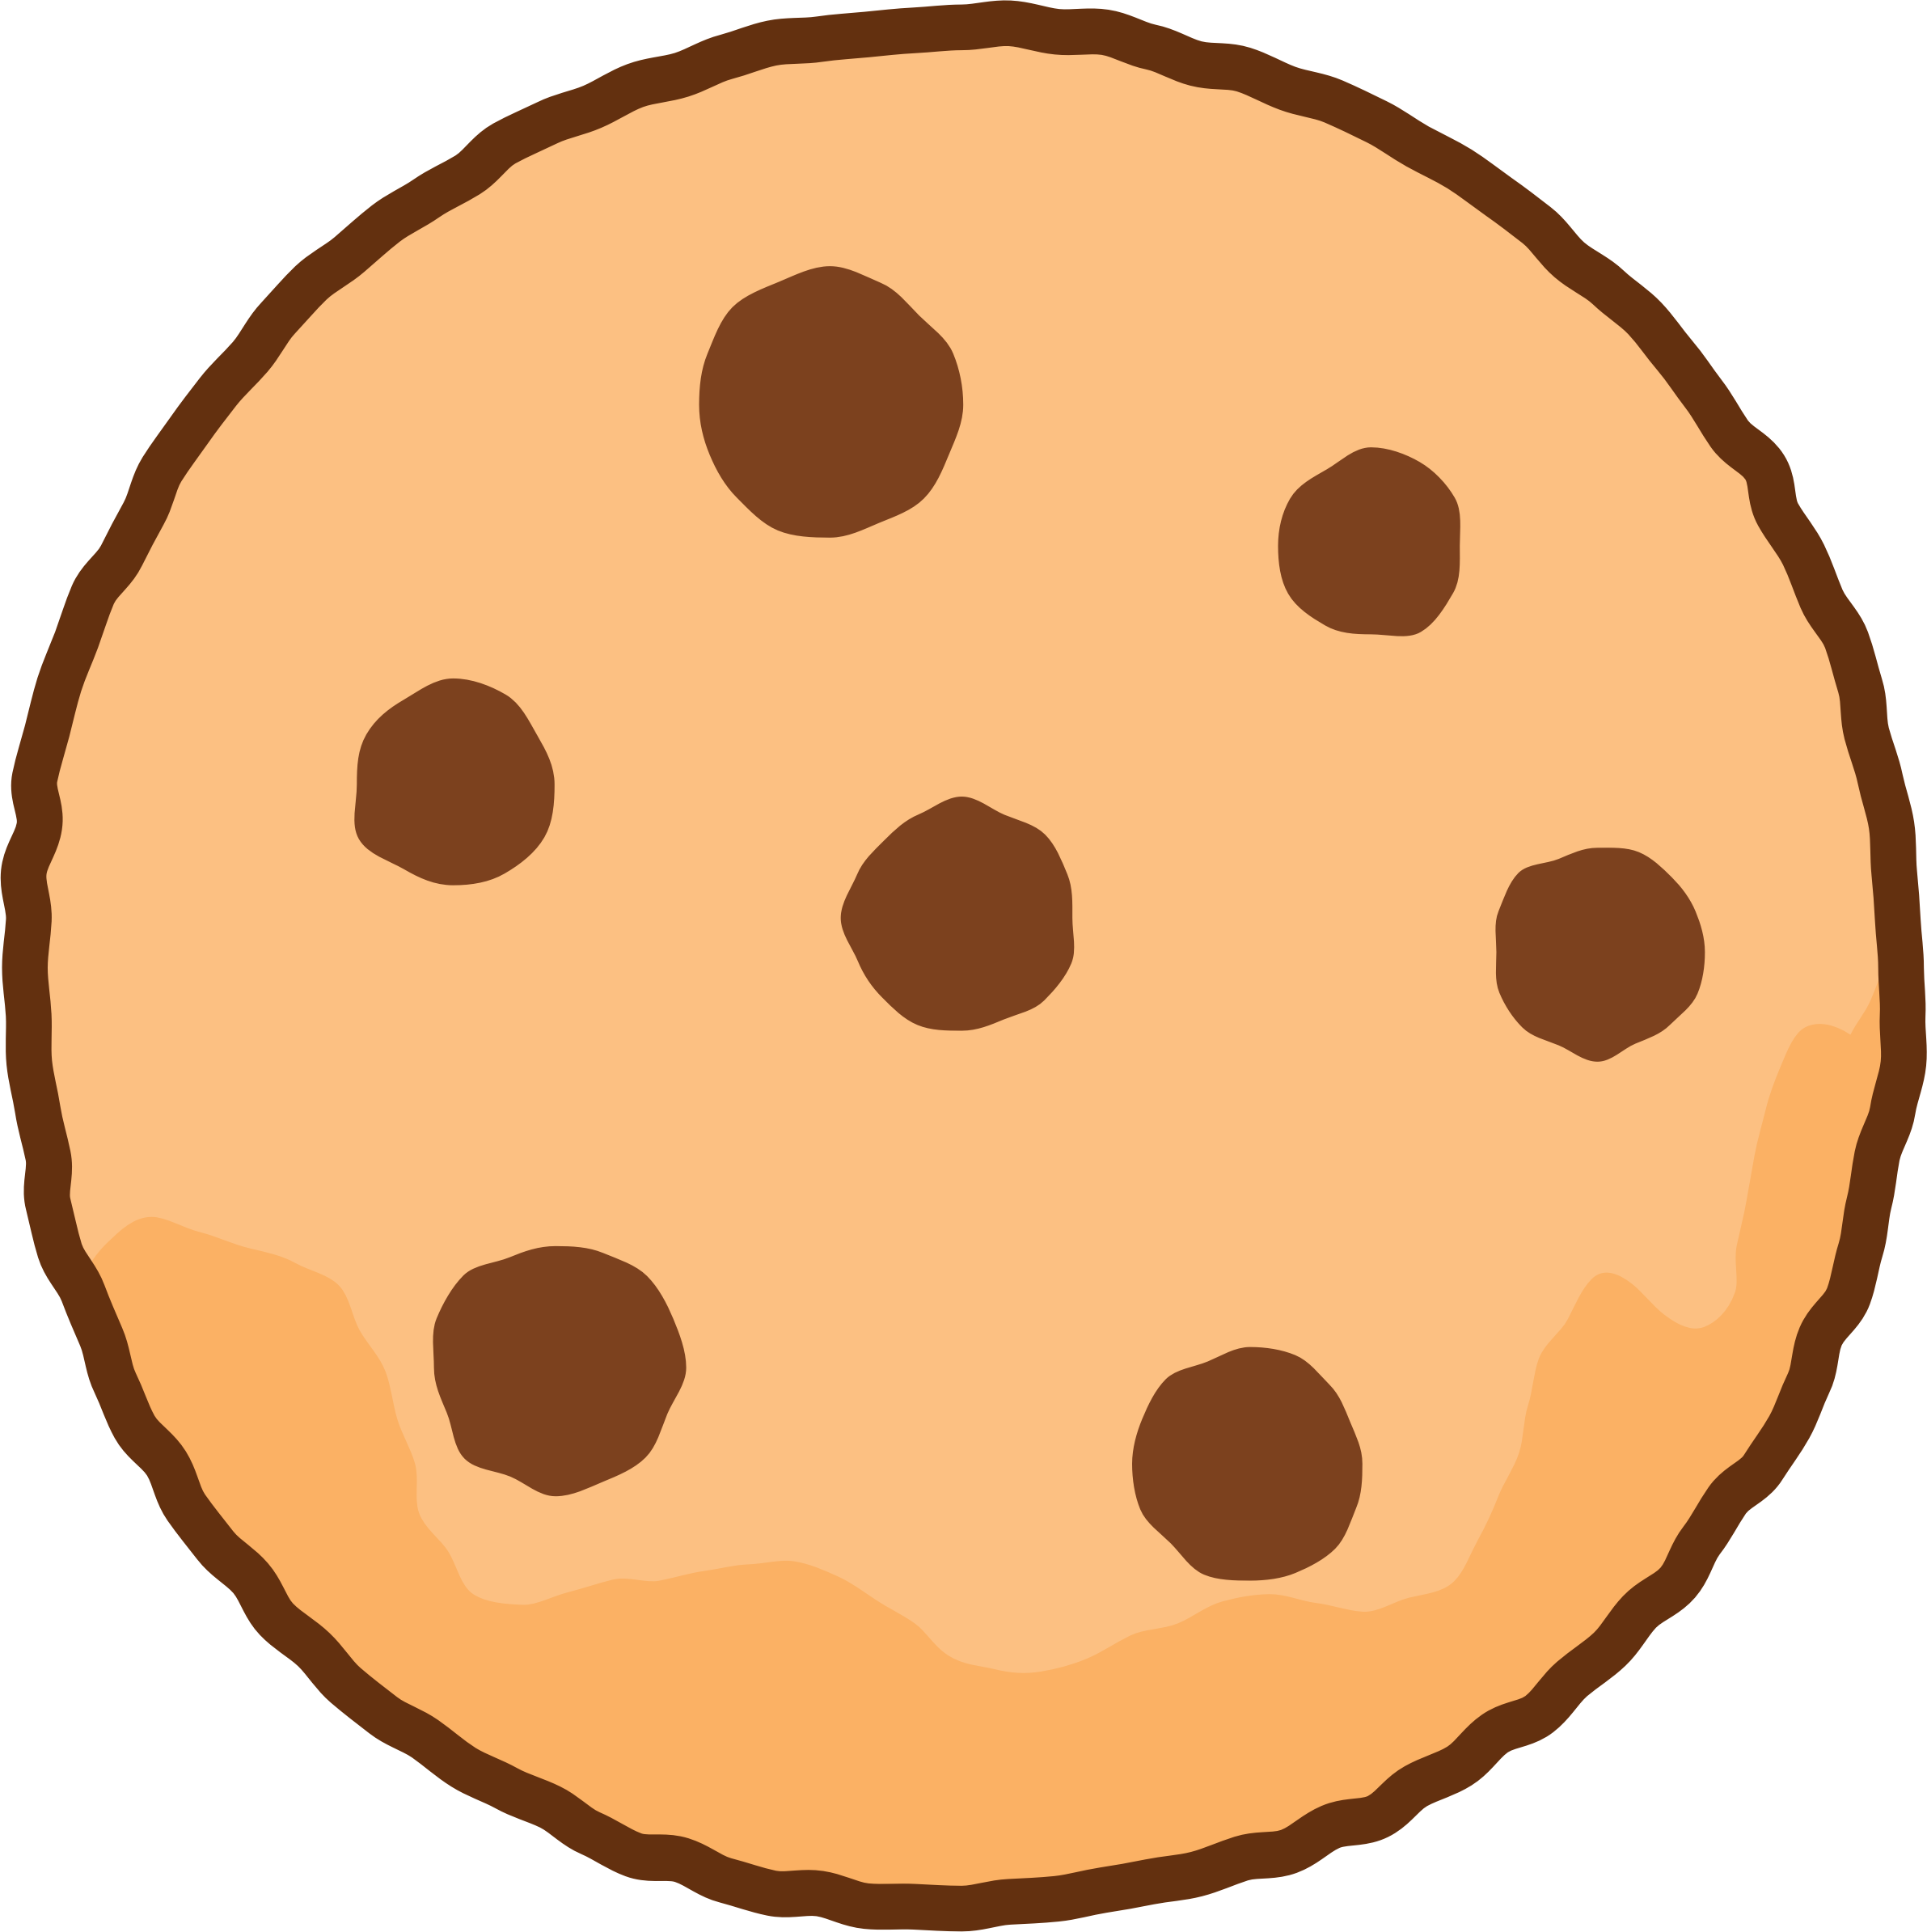 If you give a mouse a cookie png. Play vocabulary by candace